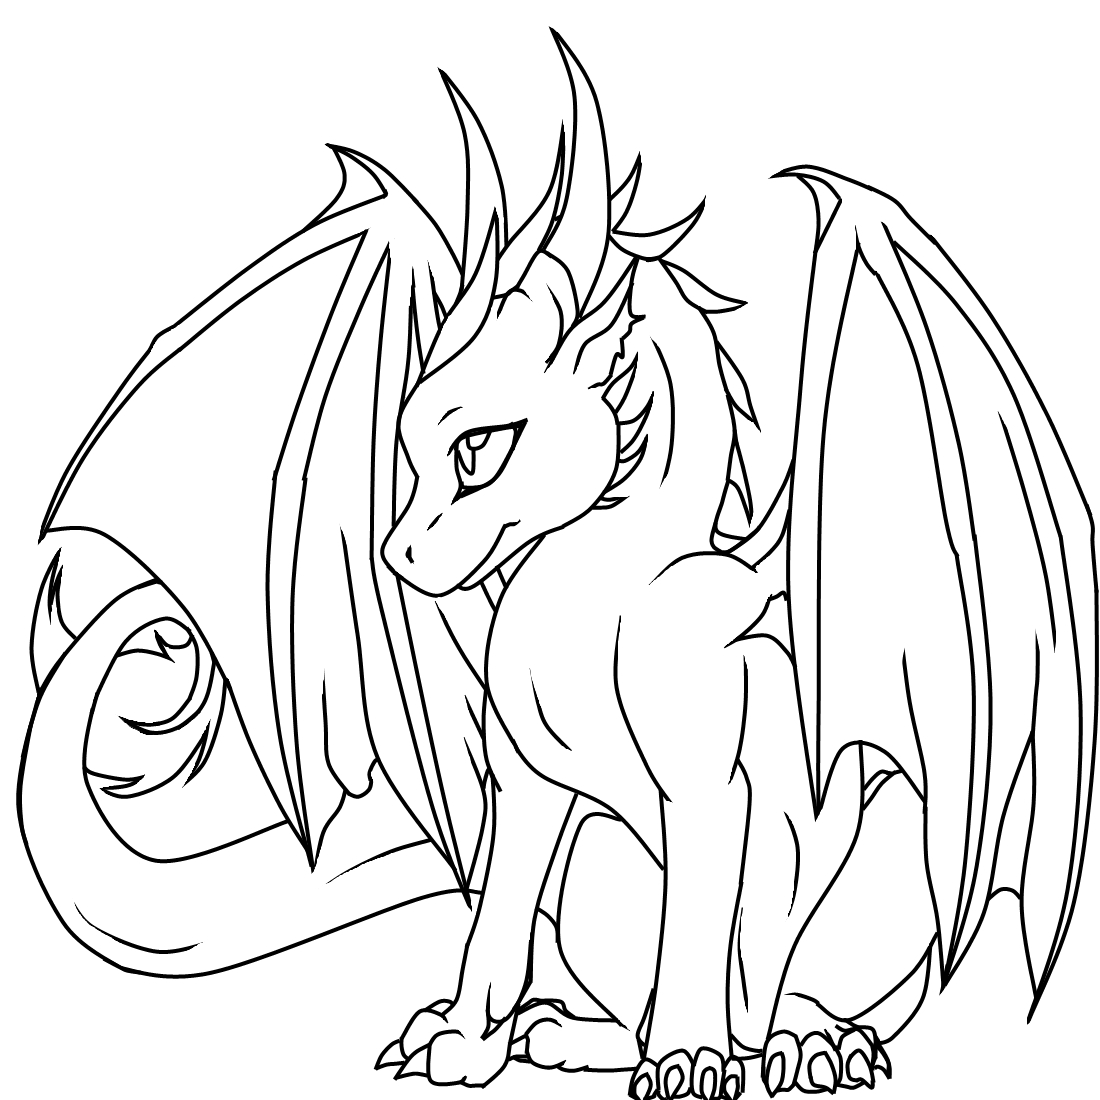 1100x1100 Printable Fire Breathing Dragon Coloring Free Colouring Pages